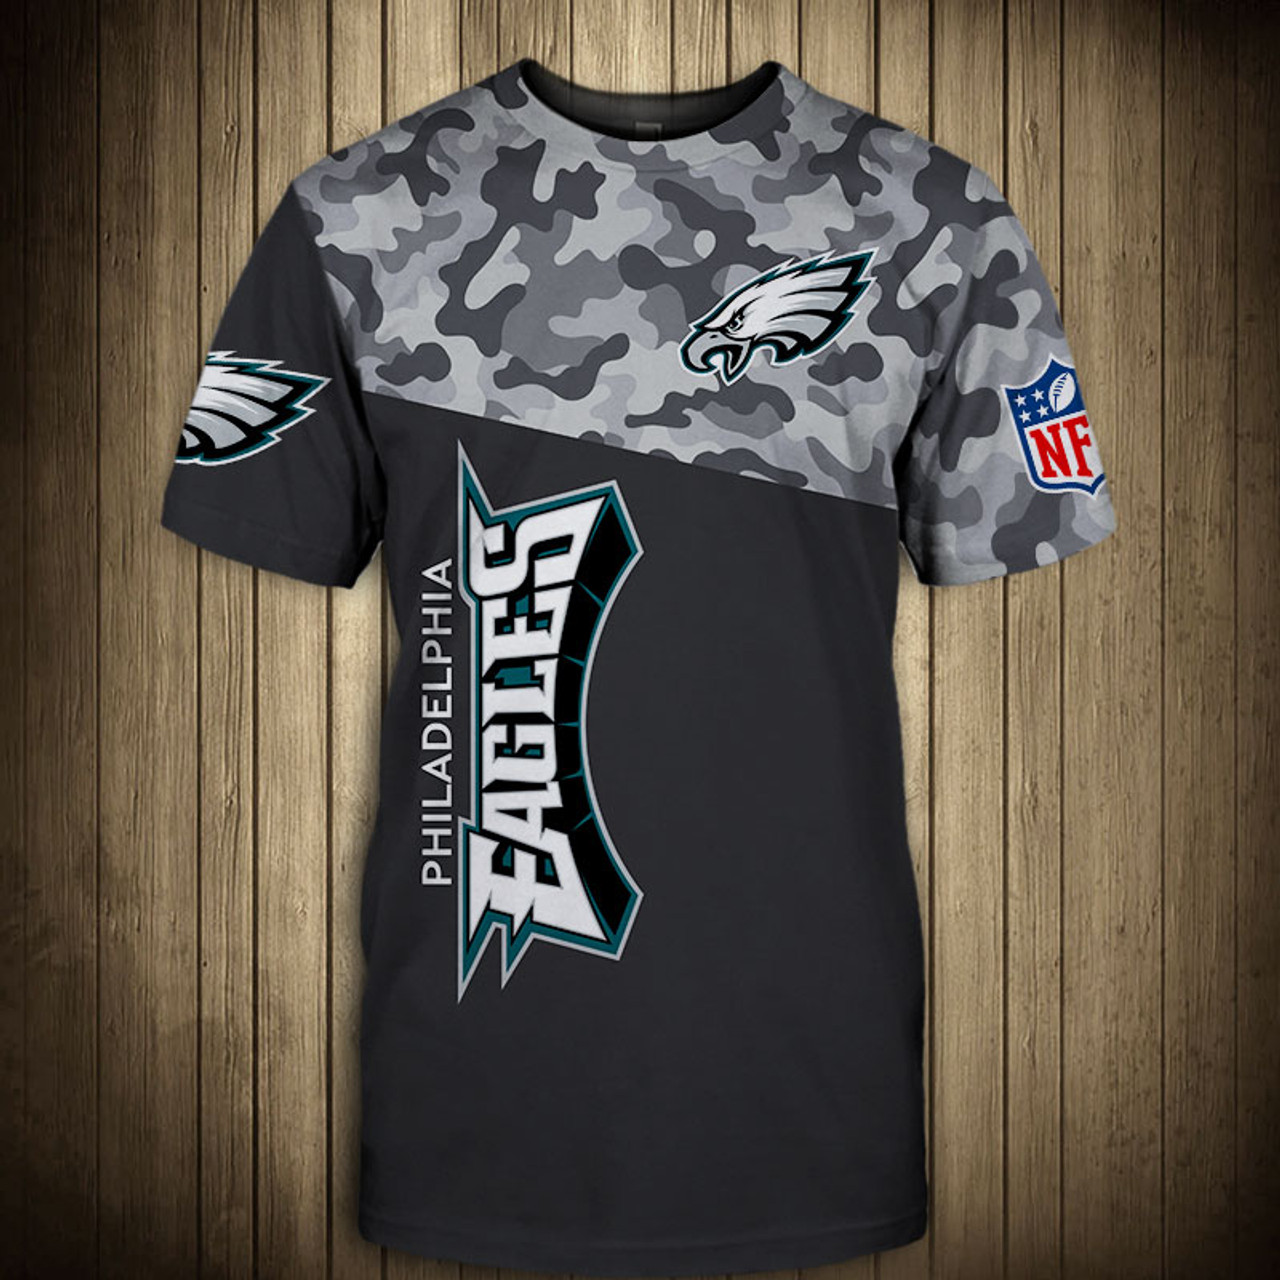 huge selection of 313d5 5b481 **(OFFICIAL-N.F.L.PHILADELPHIA-EAGLES-CAMO.DESIGN-TEAM-TEES/CUSTOM-3D-EAGLES-OFFICIAL-LOGOS  & OFFICIAL-EAGLES-TEAM-COLORS/DETAILED-3D-GRAPHIC-PRINTED-...